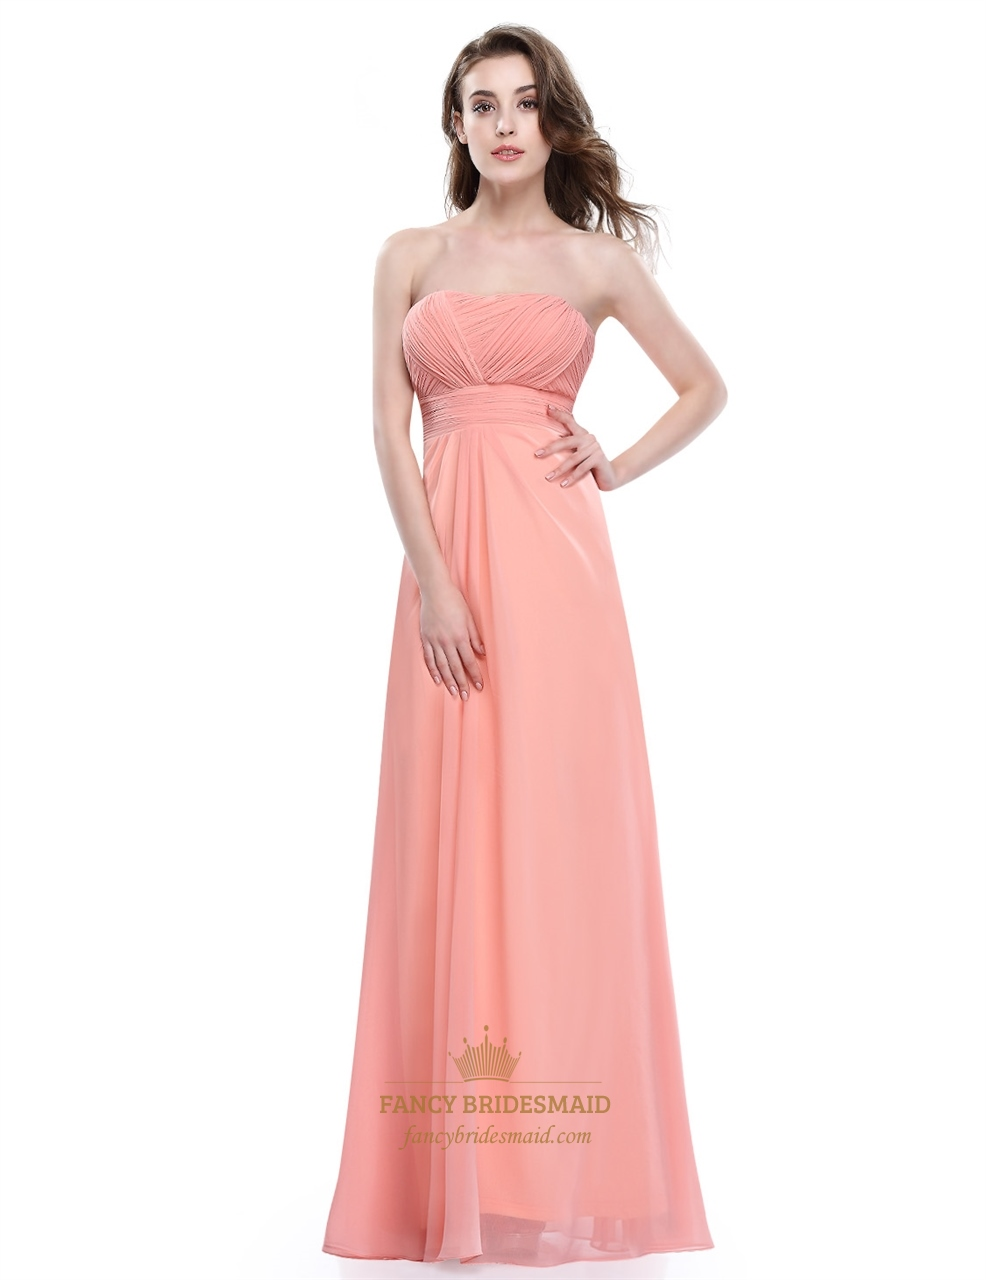 Soft Peach Strapless A Line Empire Long Prom Dress With